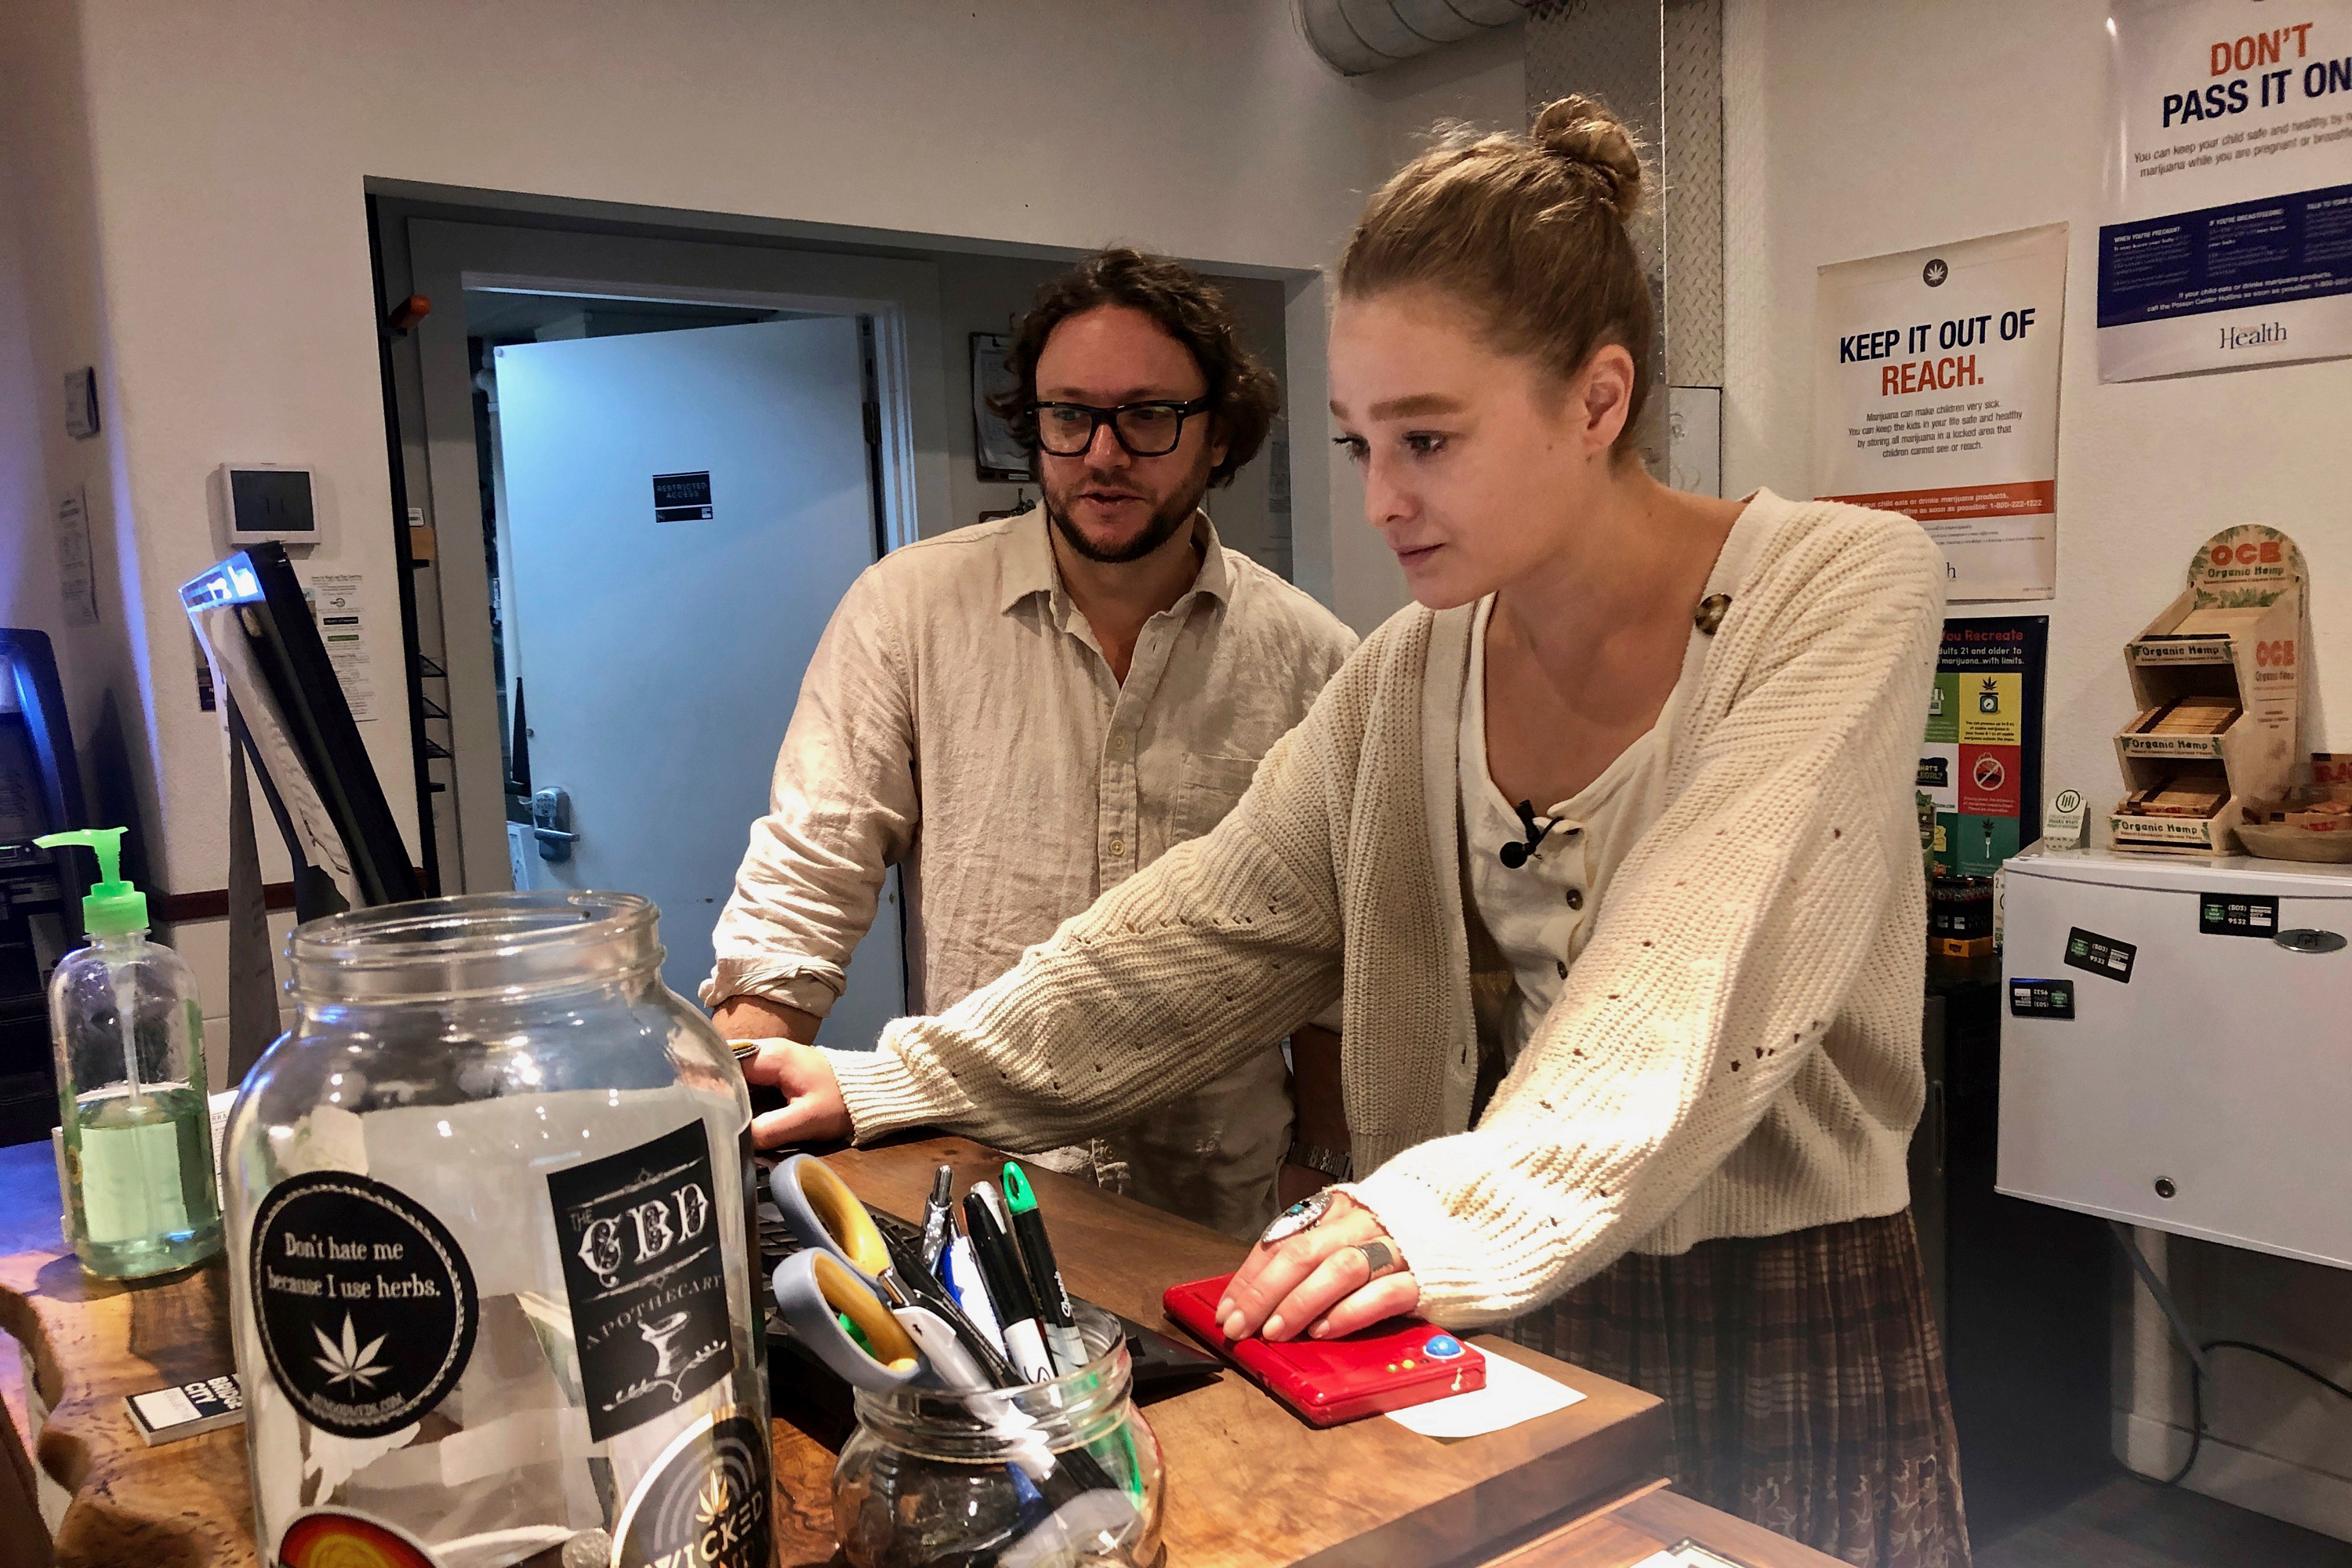 """In this photo taken Sept. 20, 2019, David Alport, owner of the Bridge City Collective marijuana dispensary in Portland, Ore., goes over sales numbers with the store's general manager Cameron Moore. The company has seen a 31 percent decrease in its sales of vaping products in the past two weeks. """"It's having an impact on how consumers are behaving,"""" said Alport. """"People are concerned, and we're concerned."""""""